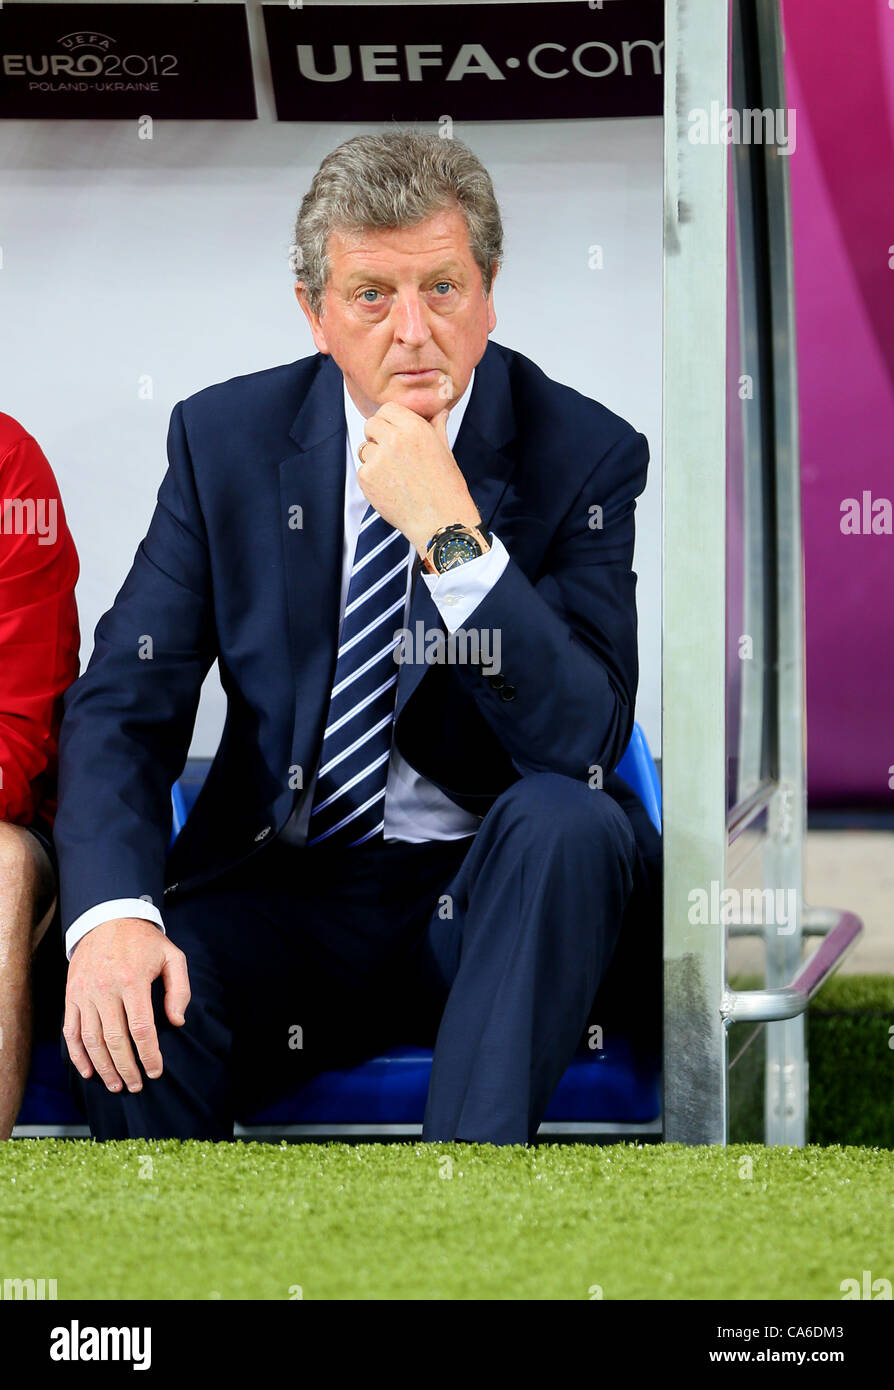 ROY HODGSON (COACH) BEFORE GAM SWEDEN V ENGLAND EURO 2012 OLYMPIC STADIUM KHARKIV UKRAINE UKRAINE 15 June 2012 - Stock Image